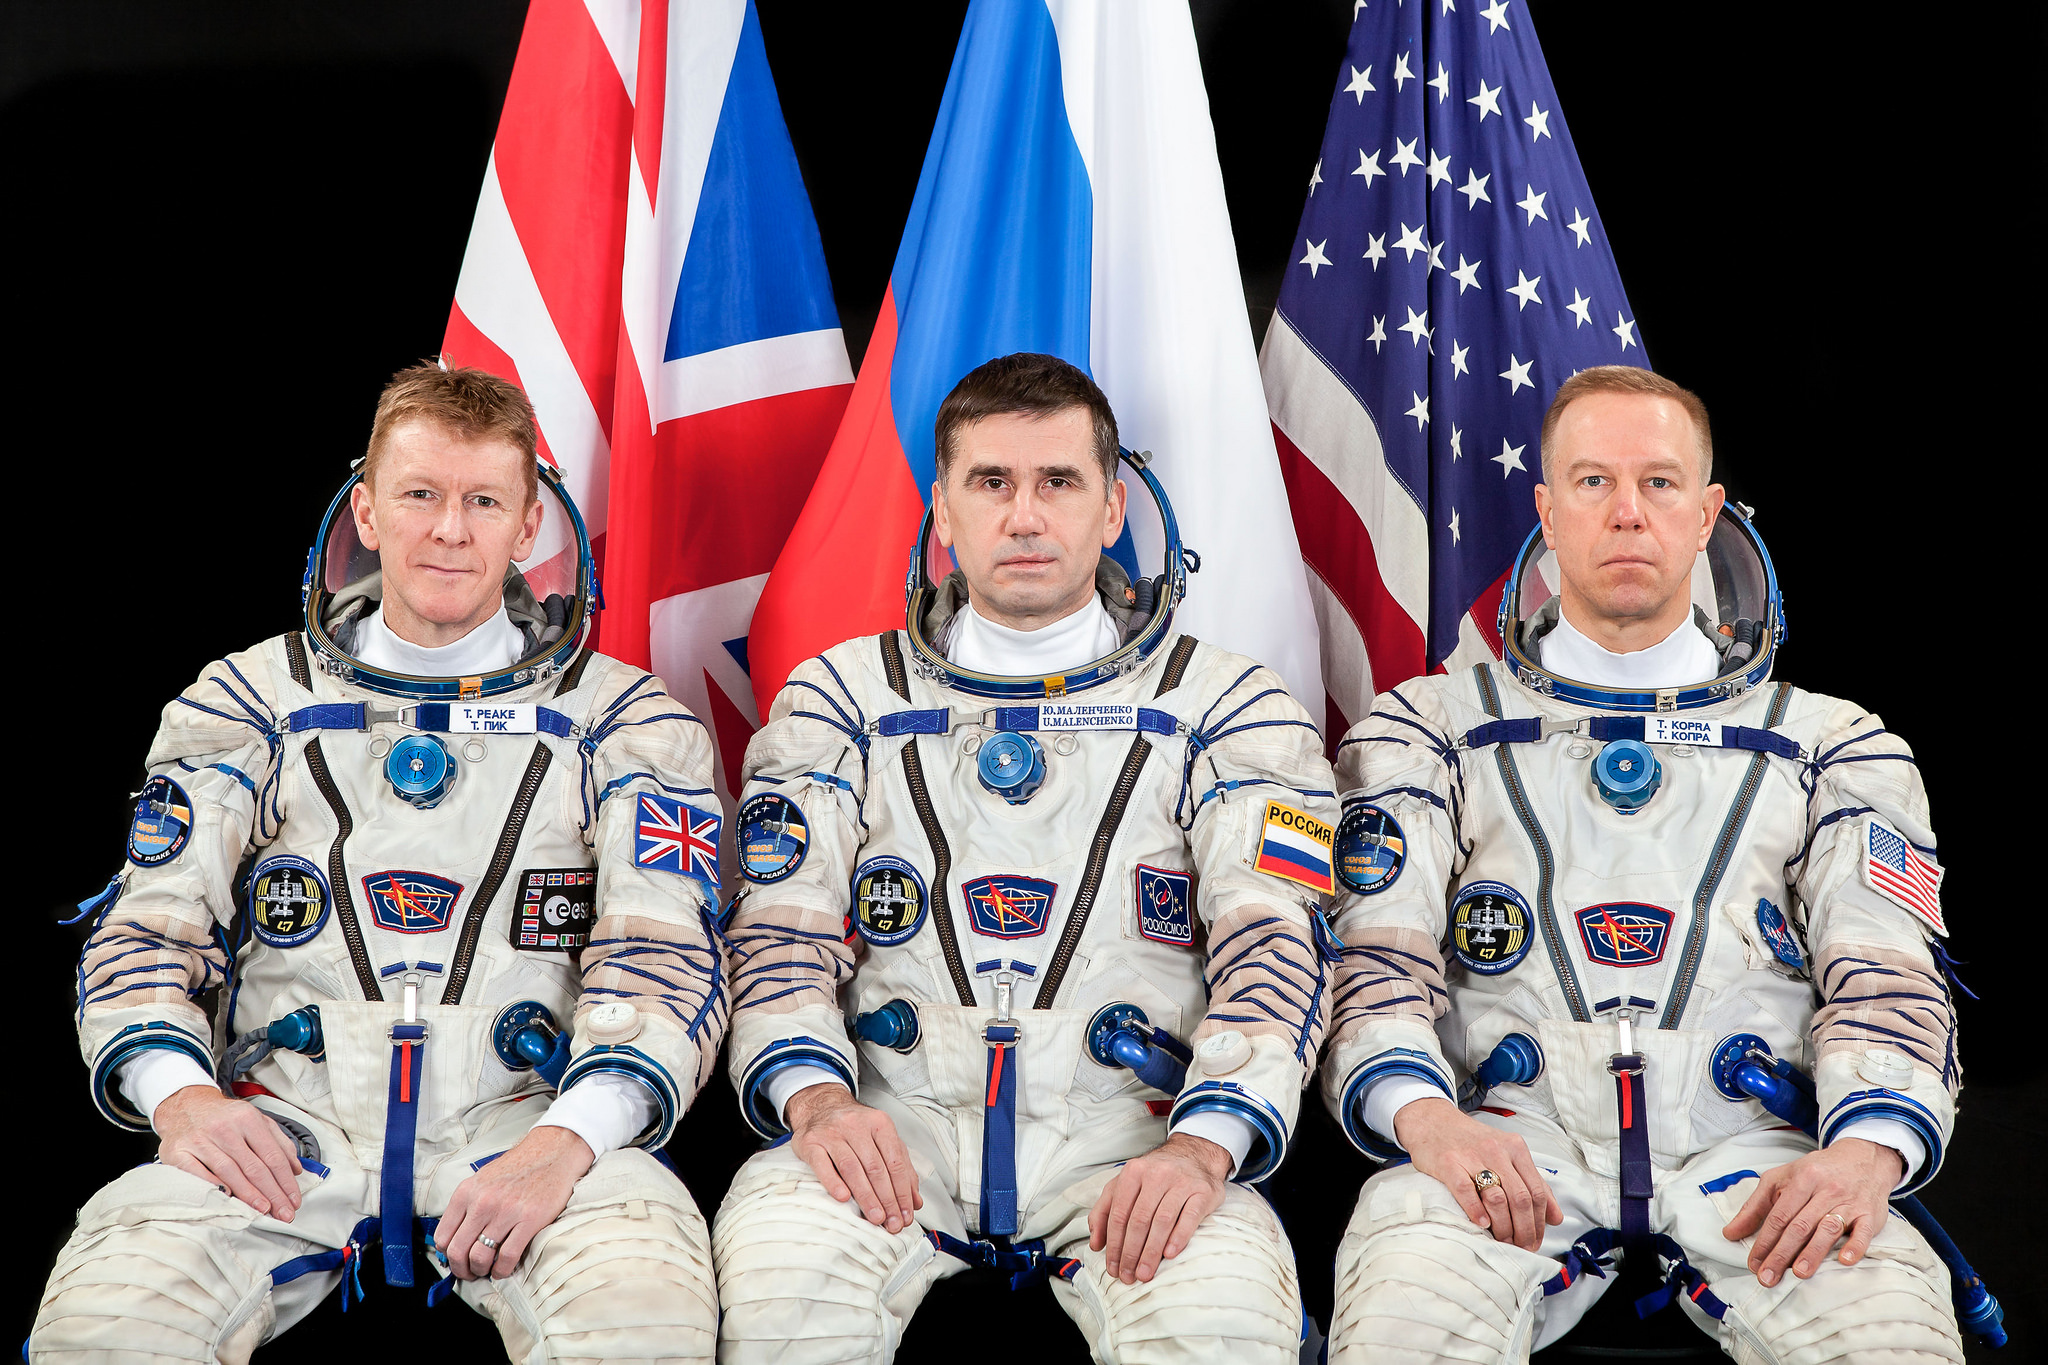 Official Soyuz TMA-19M crew photo